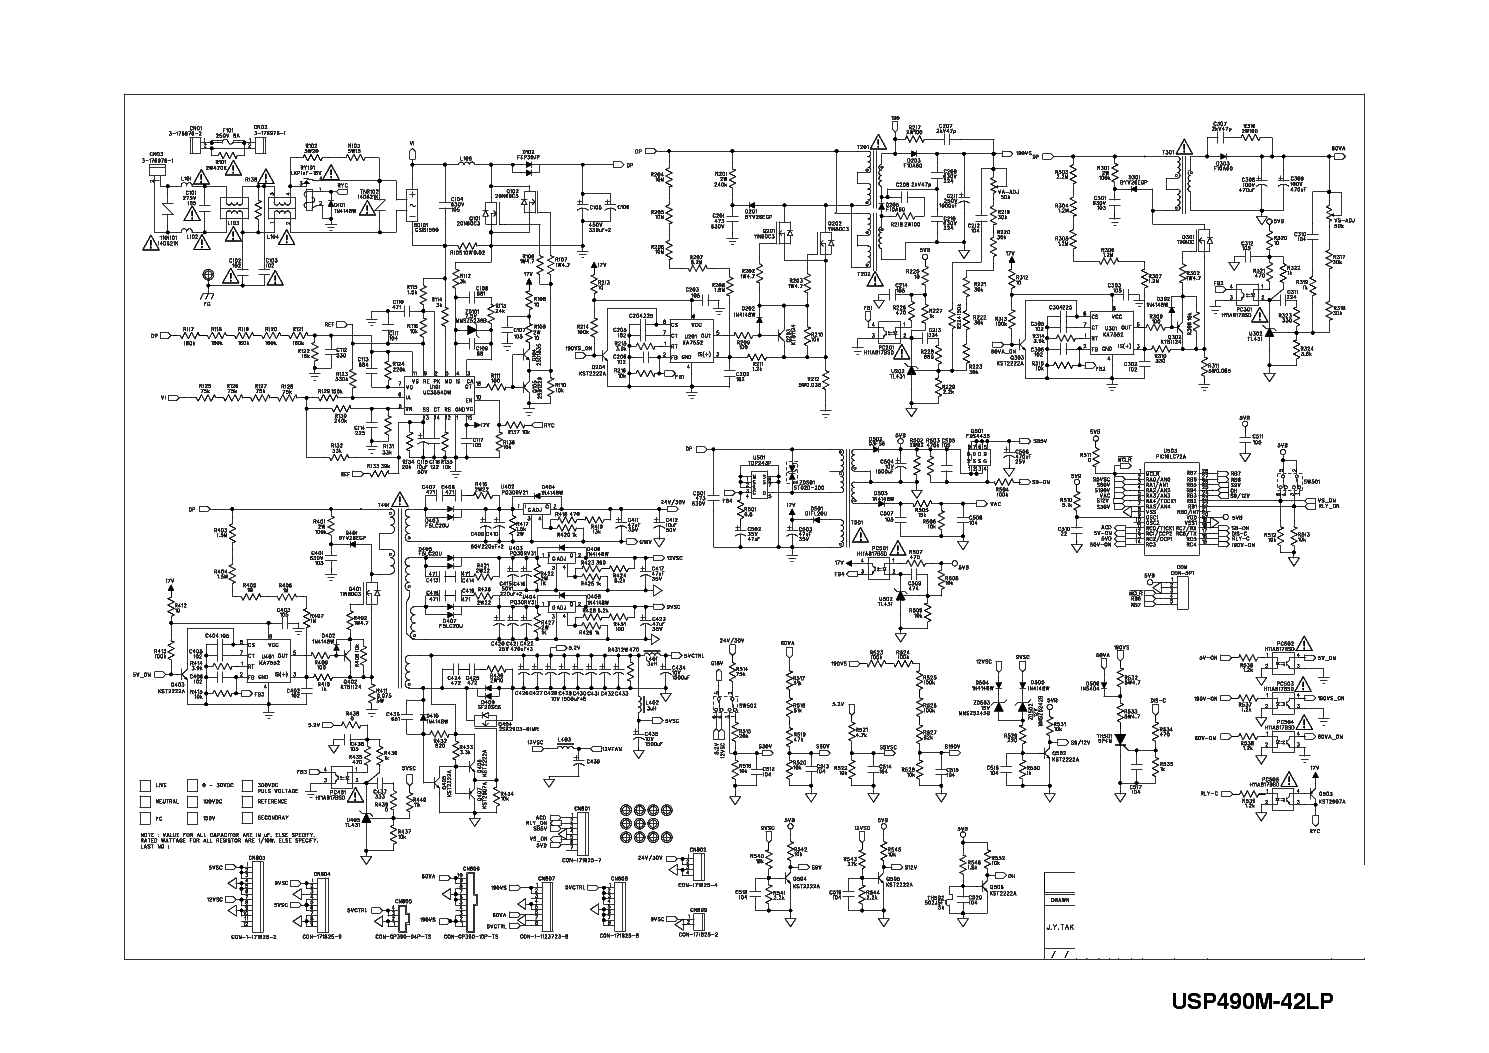 hight resolution of lg tv circuit diagram including power supply schematic diagram tv power supply schematic diagram likewise samsung led tv power supply